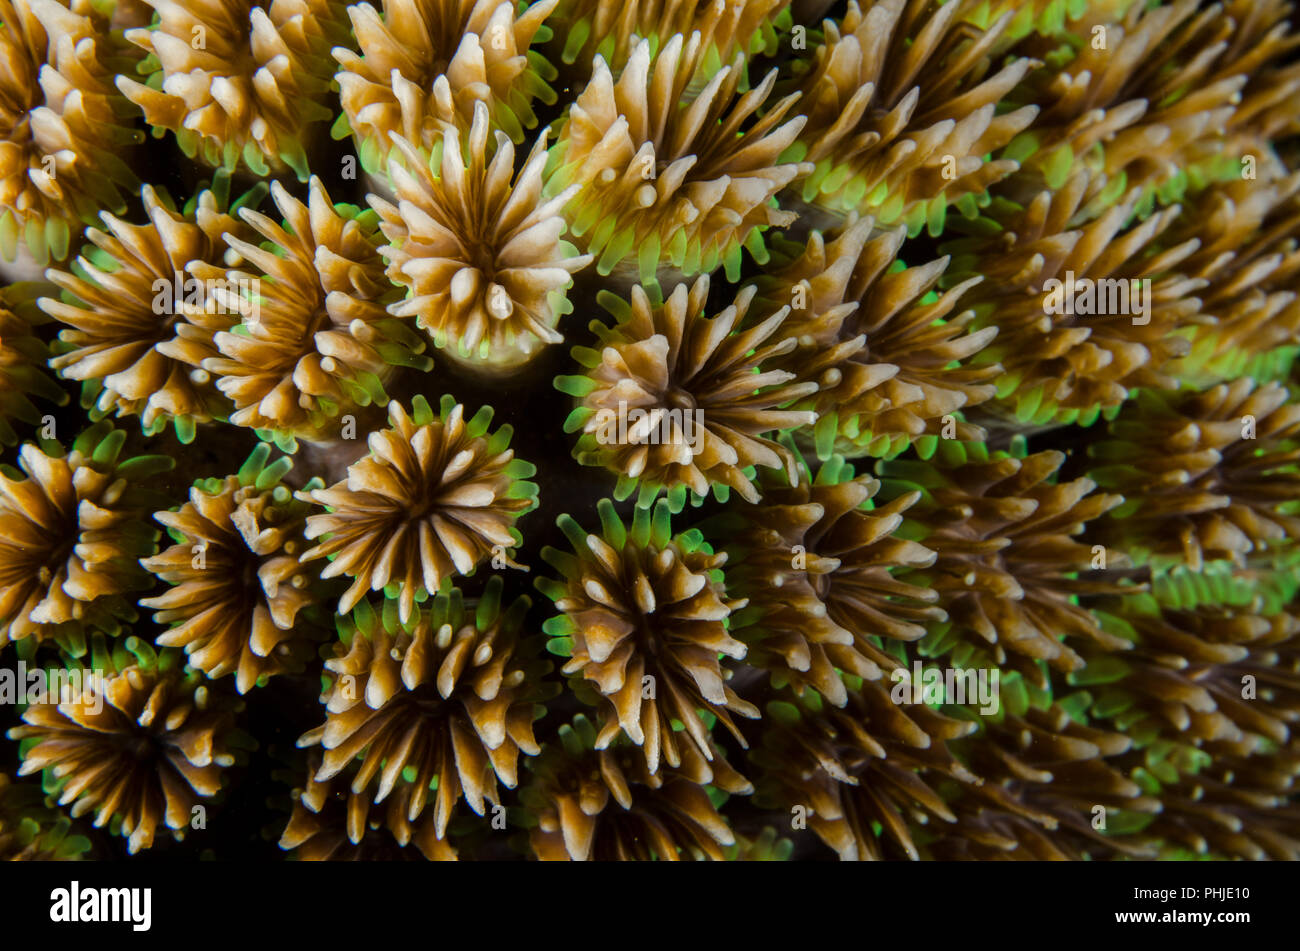 Galaxy Coral, Galaxea fascicularis, Oculinidae,  Anilao, Philippines, Philippine Sea, Pacific Ocean, Asia - Stock Image